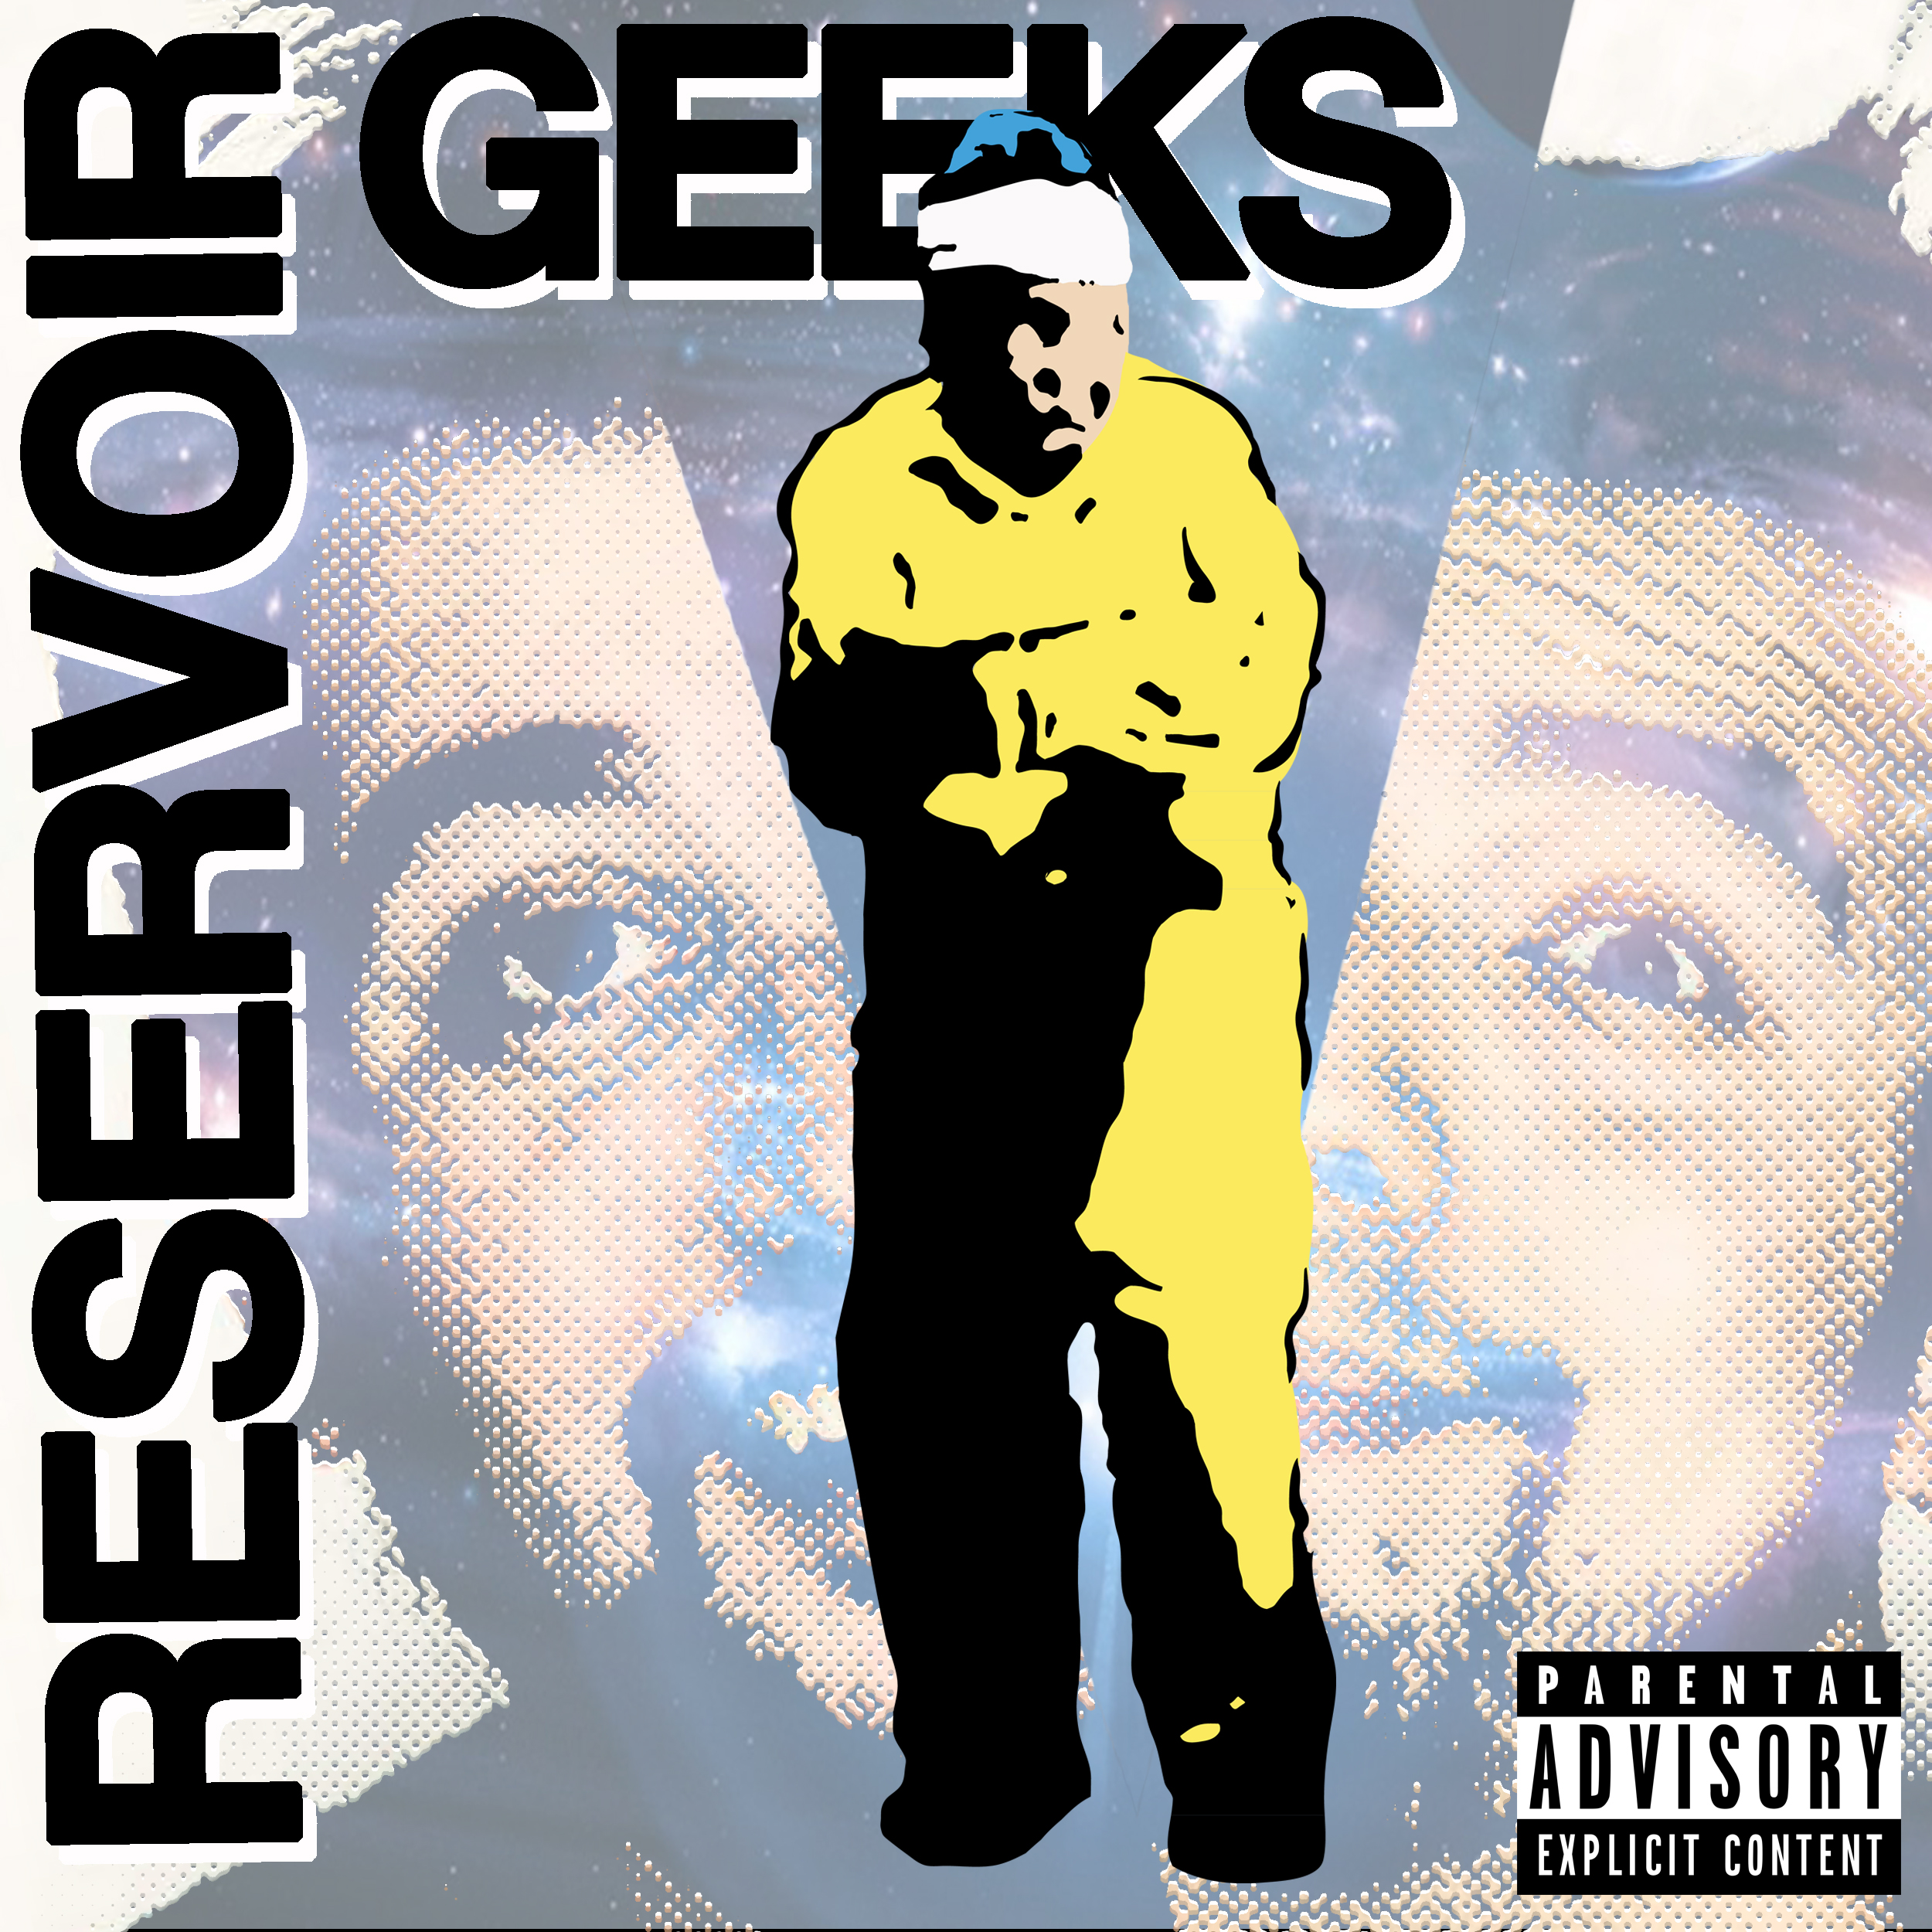 Silent since 2009, it's back with monthly non-topical chit-chat from the Reservoir Geeks.   MATURE CONTENT